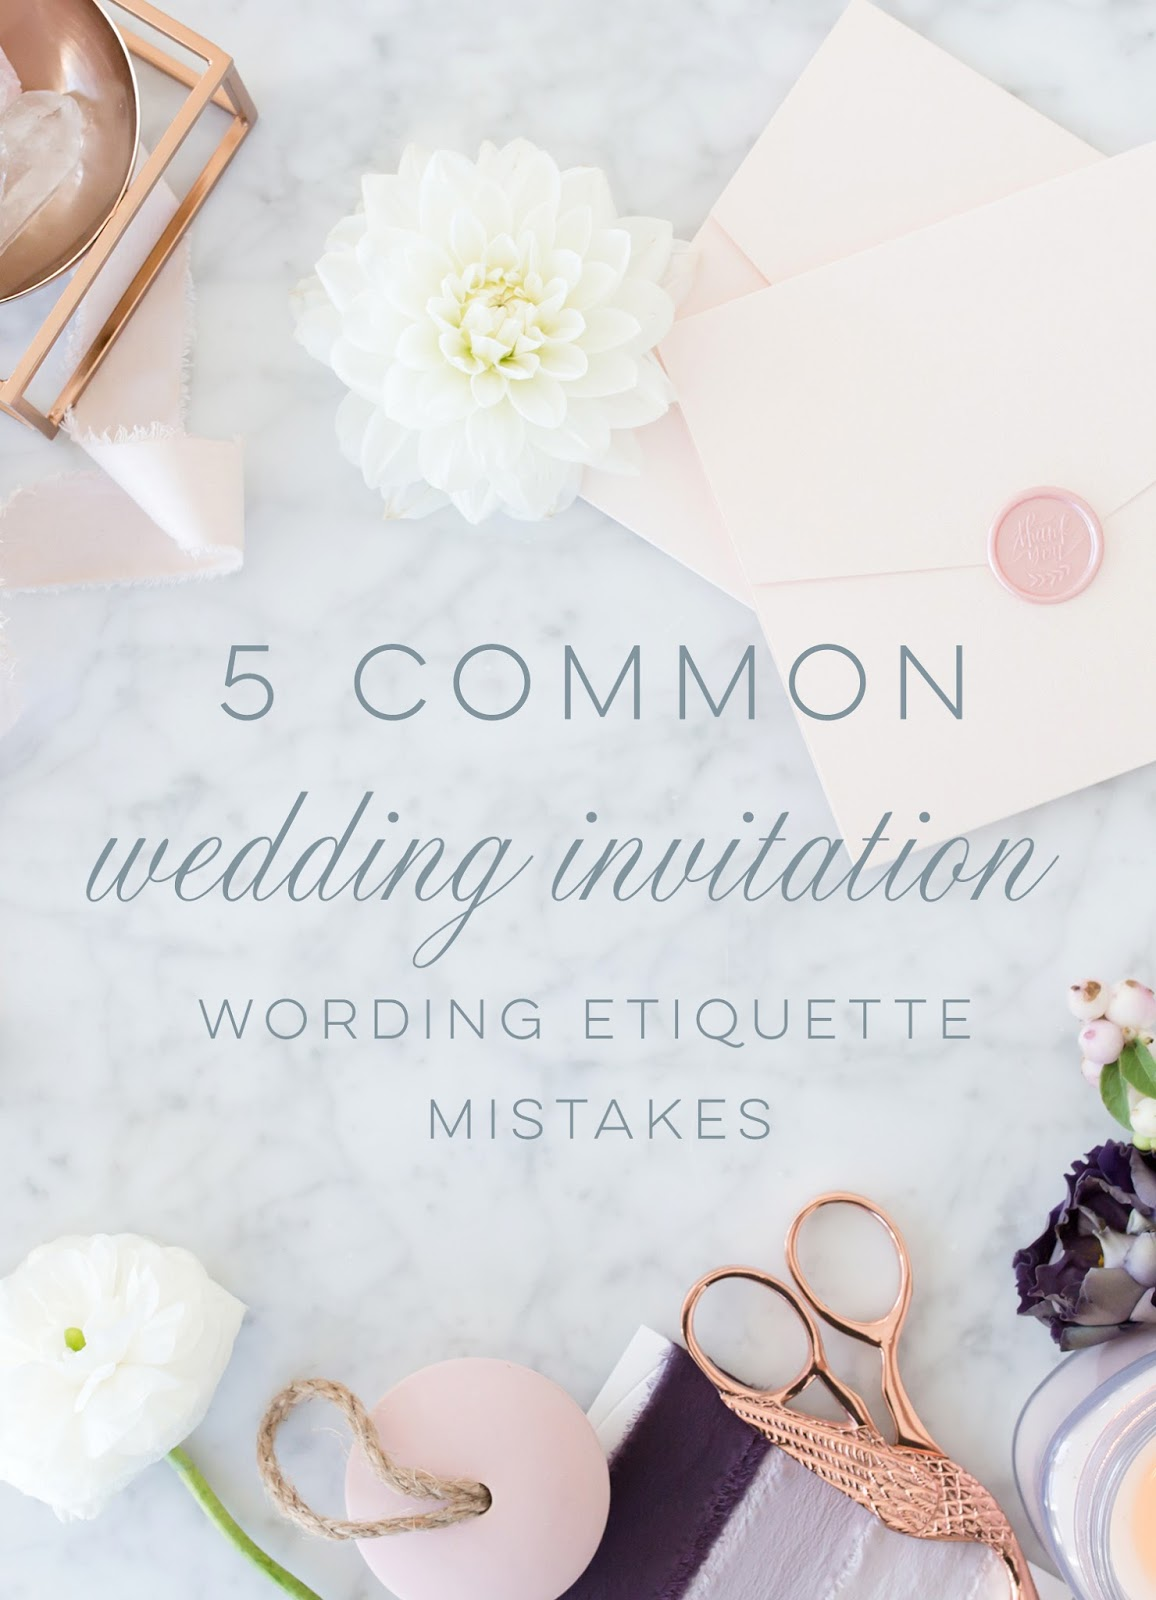 Wedding Invitation Wording Etiquette.Blush Paperie Wedding Invitation Wording Etiquette 5 Common Mistakes